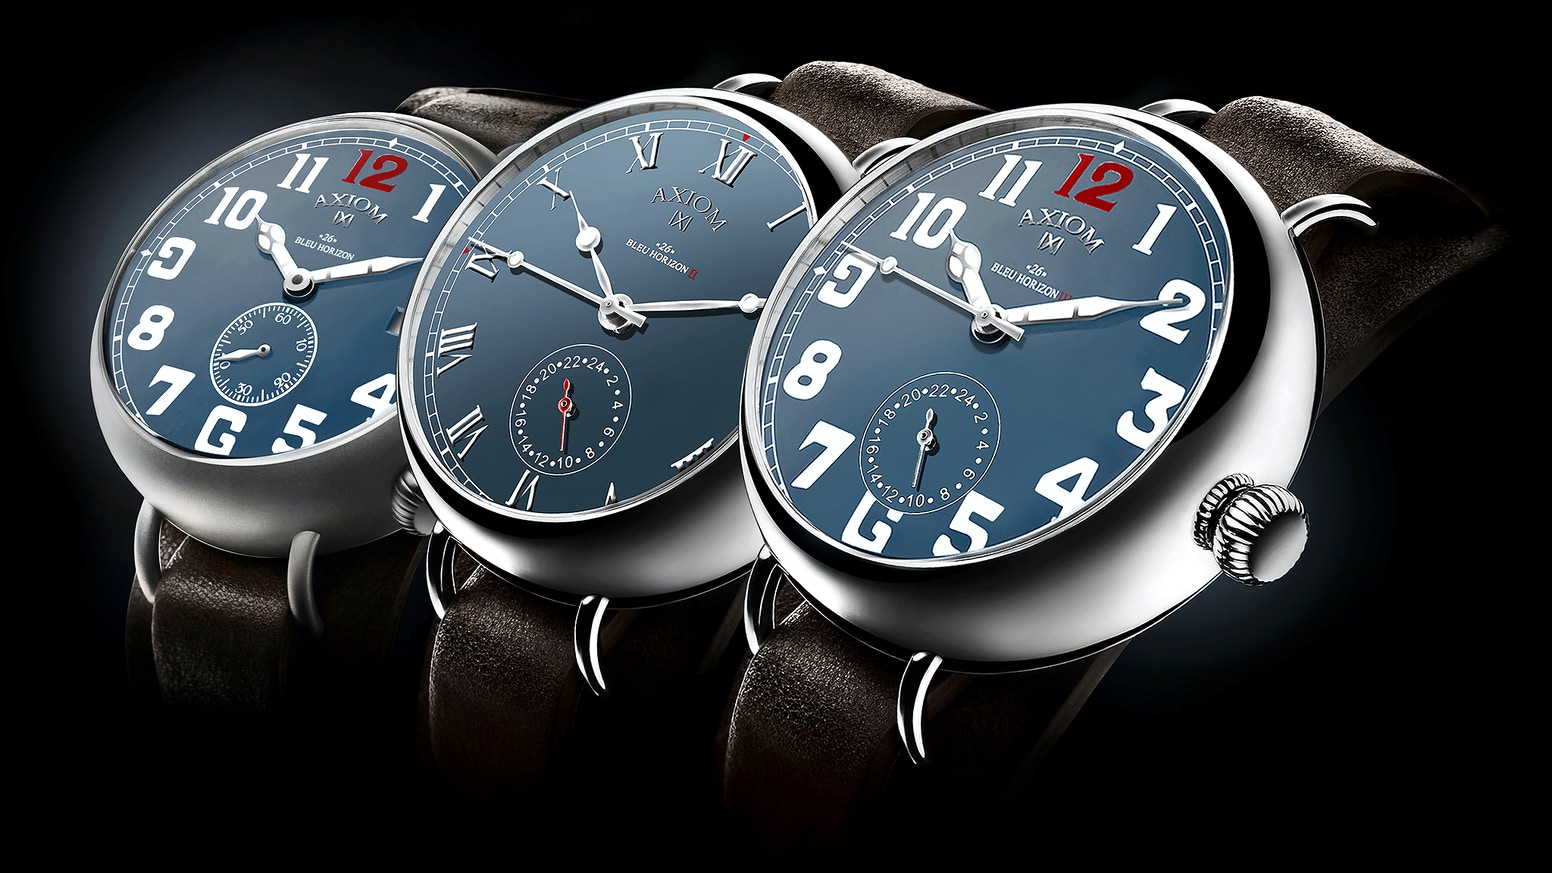 """Introducing the """"26"""" BLEU HORIZON, a creative automatic timepieces inspired by the Great War. Hand assembled in France."""